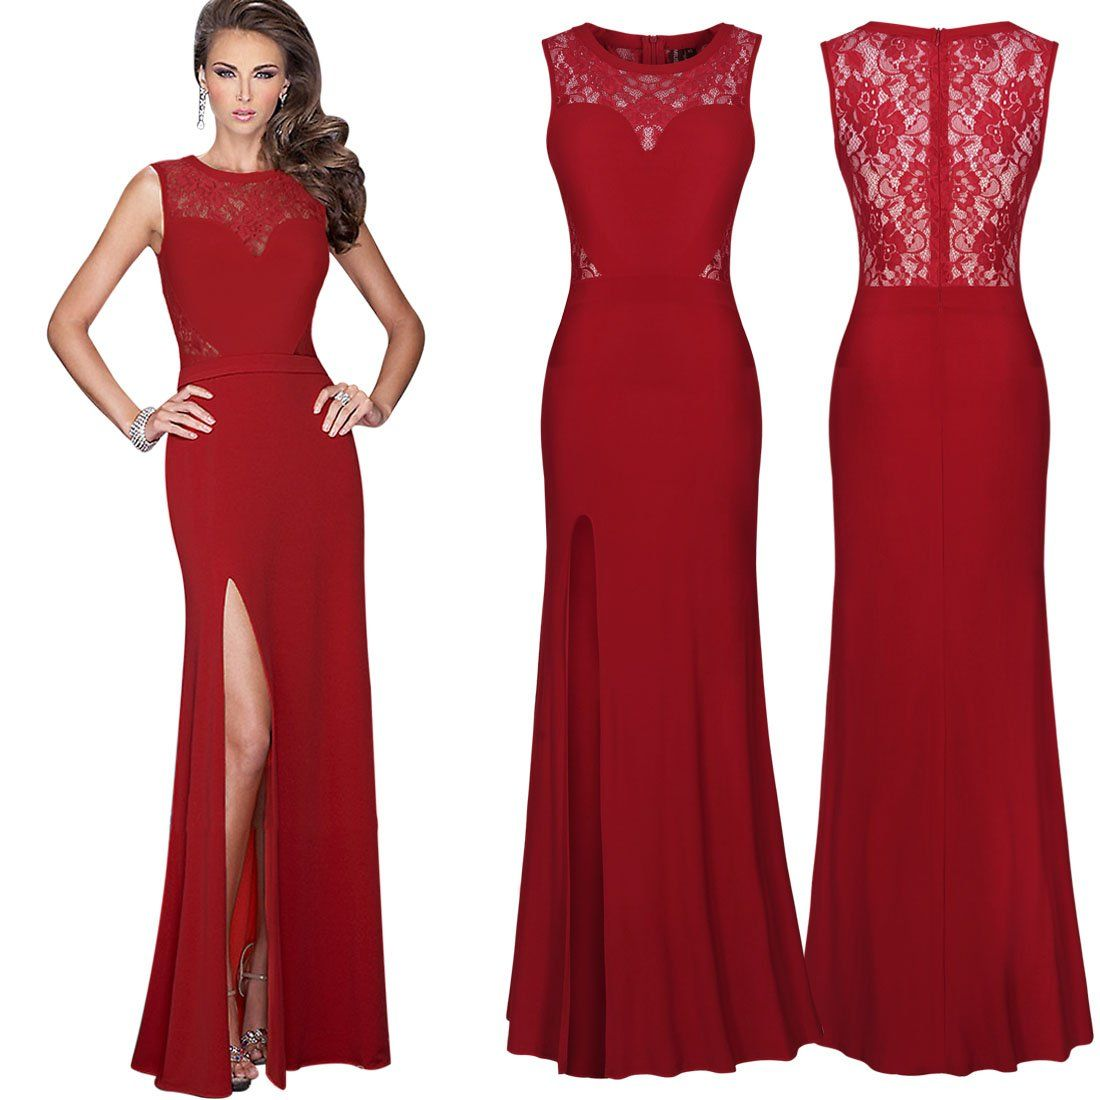 e9e10c4a6504 MISSMAY Women's Long Evening Wedding Bodycon Cocktail Party Dress at Amazon  Women's Clothing store: